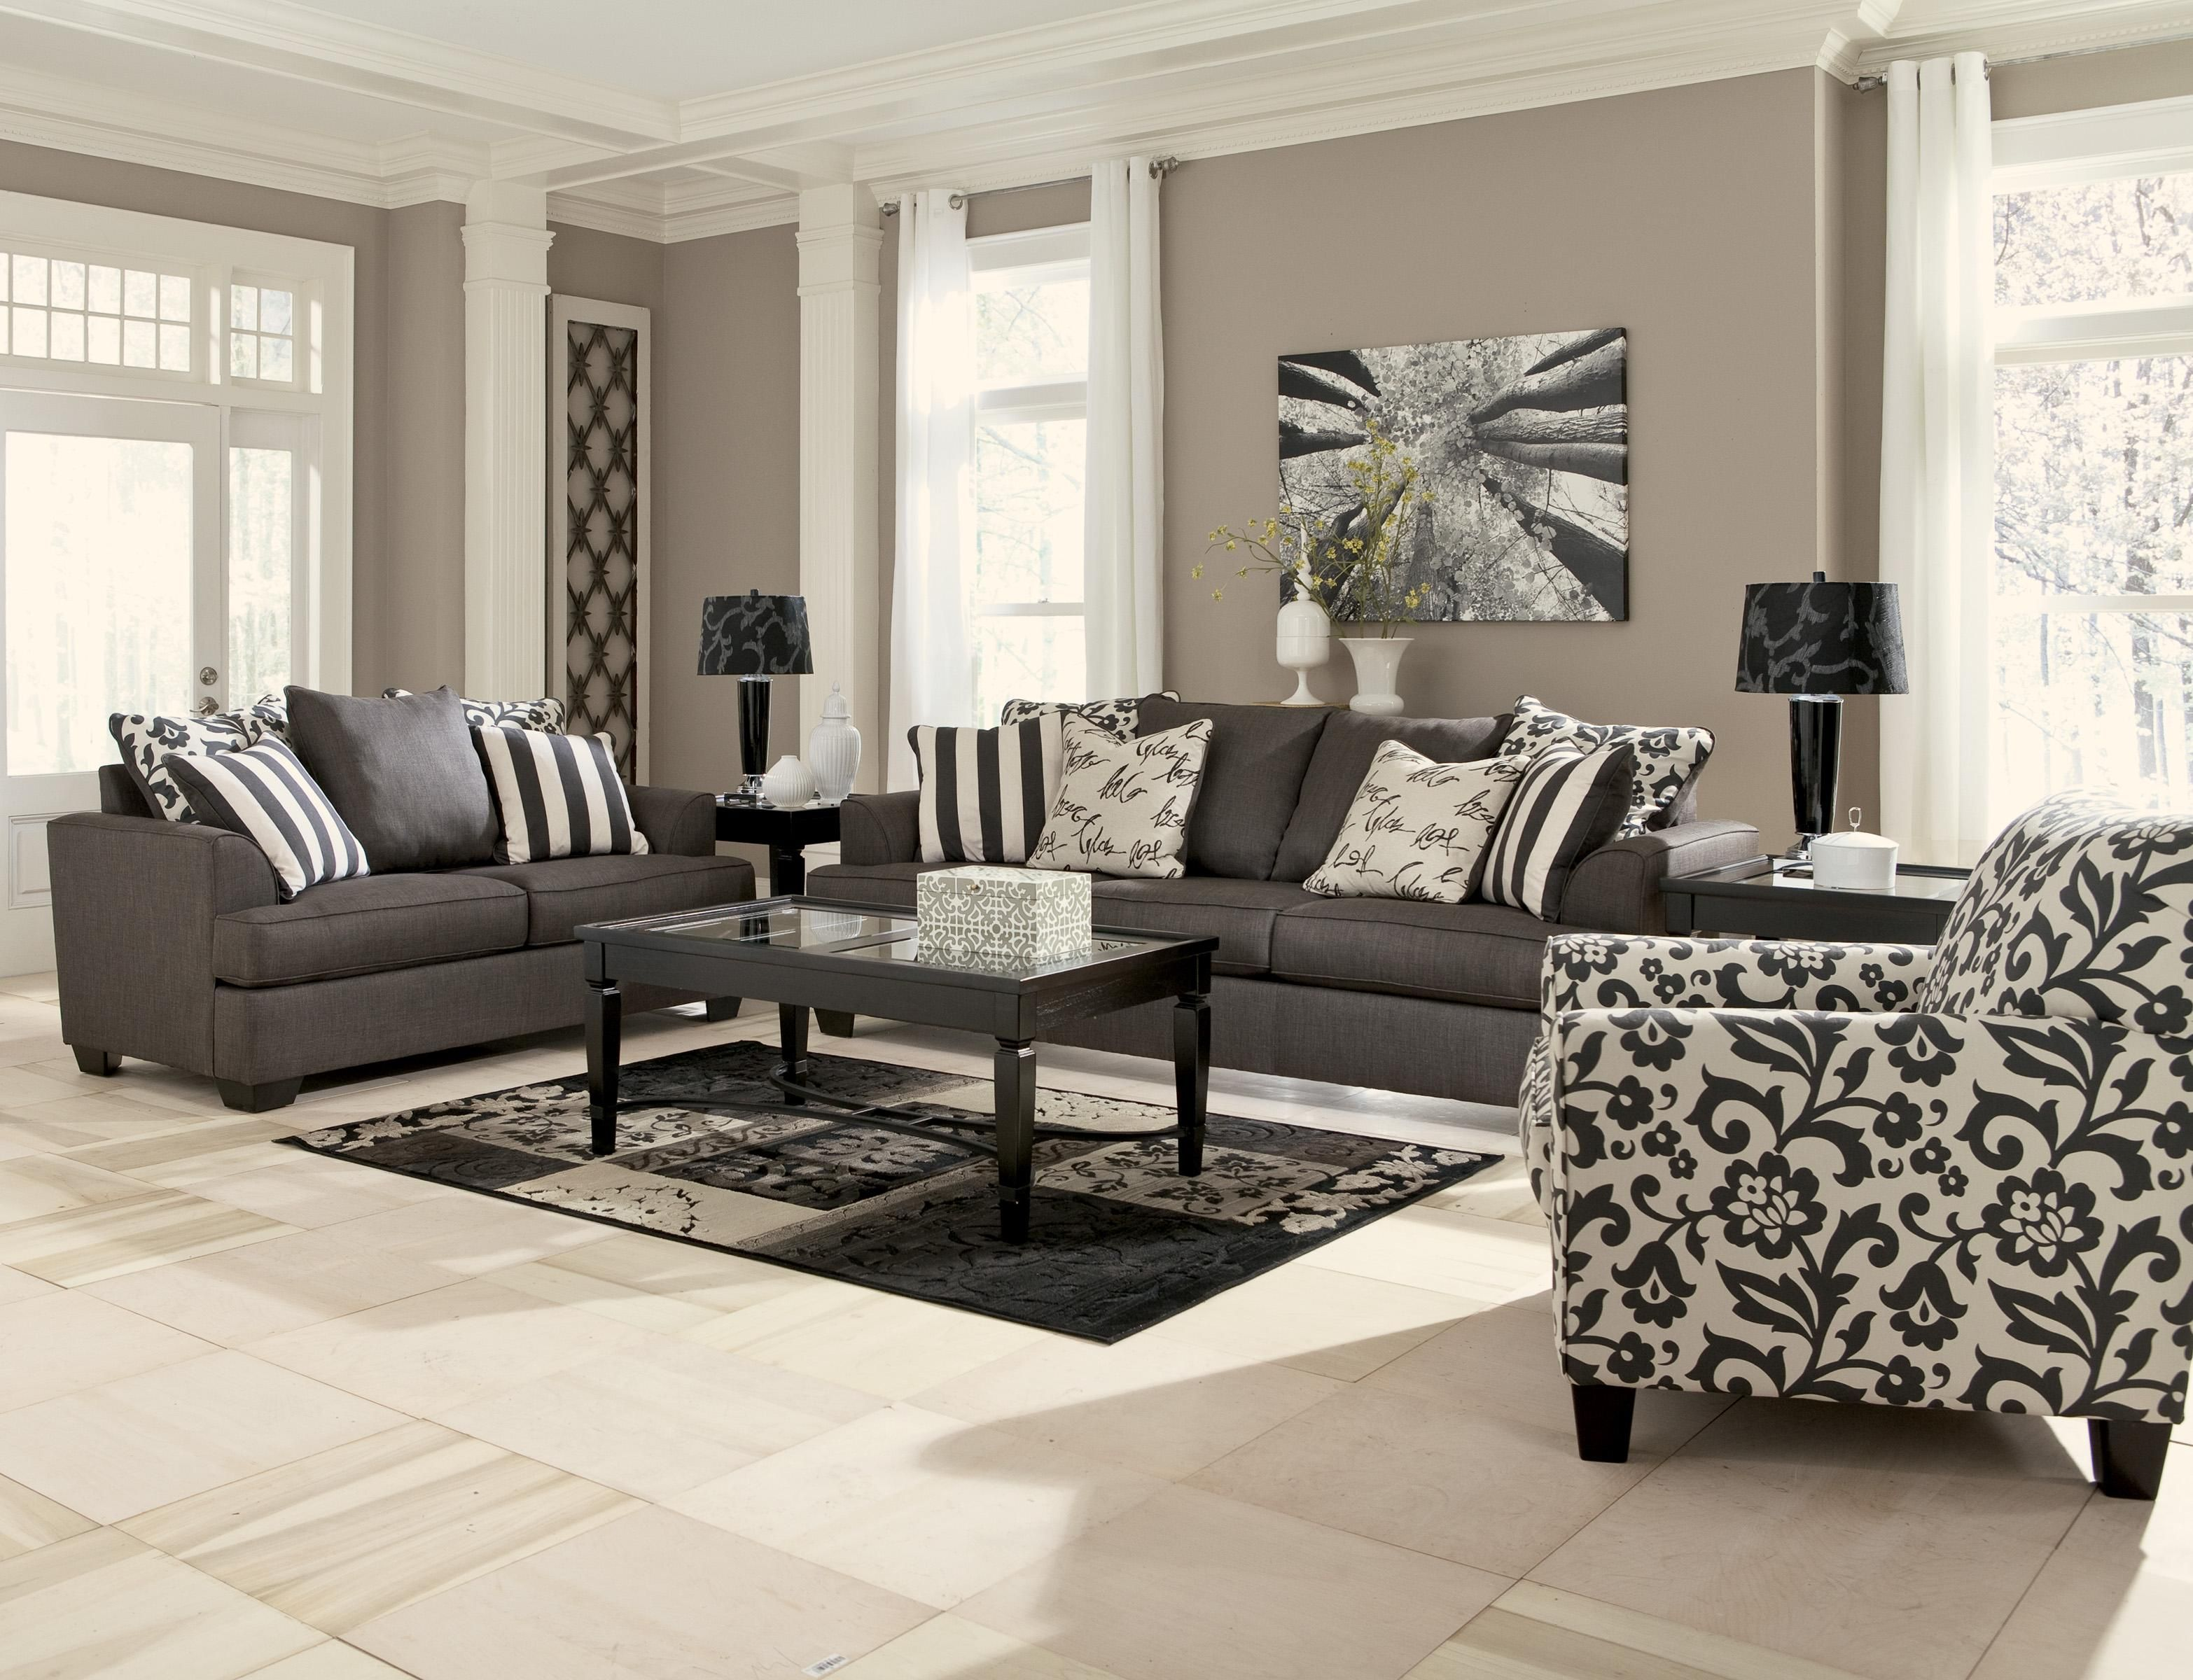 ... Design That Perfectly Utilizes Both Style And Comfort, The Levon  Charcoal Living Room Set By Signature Design By Ashley Furniture Features  Plush Boxed